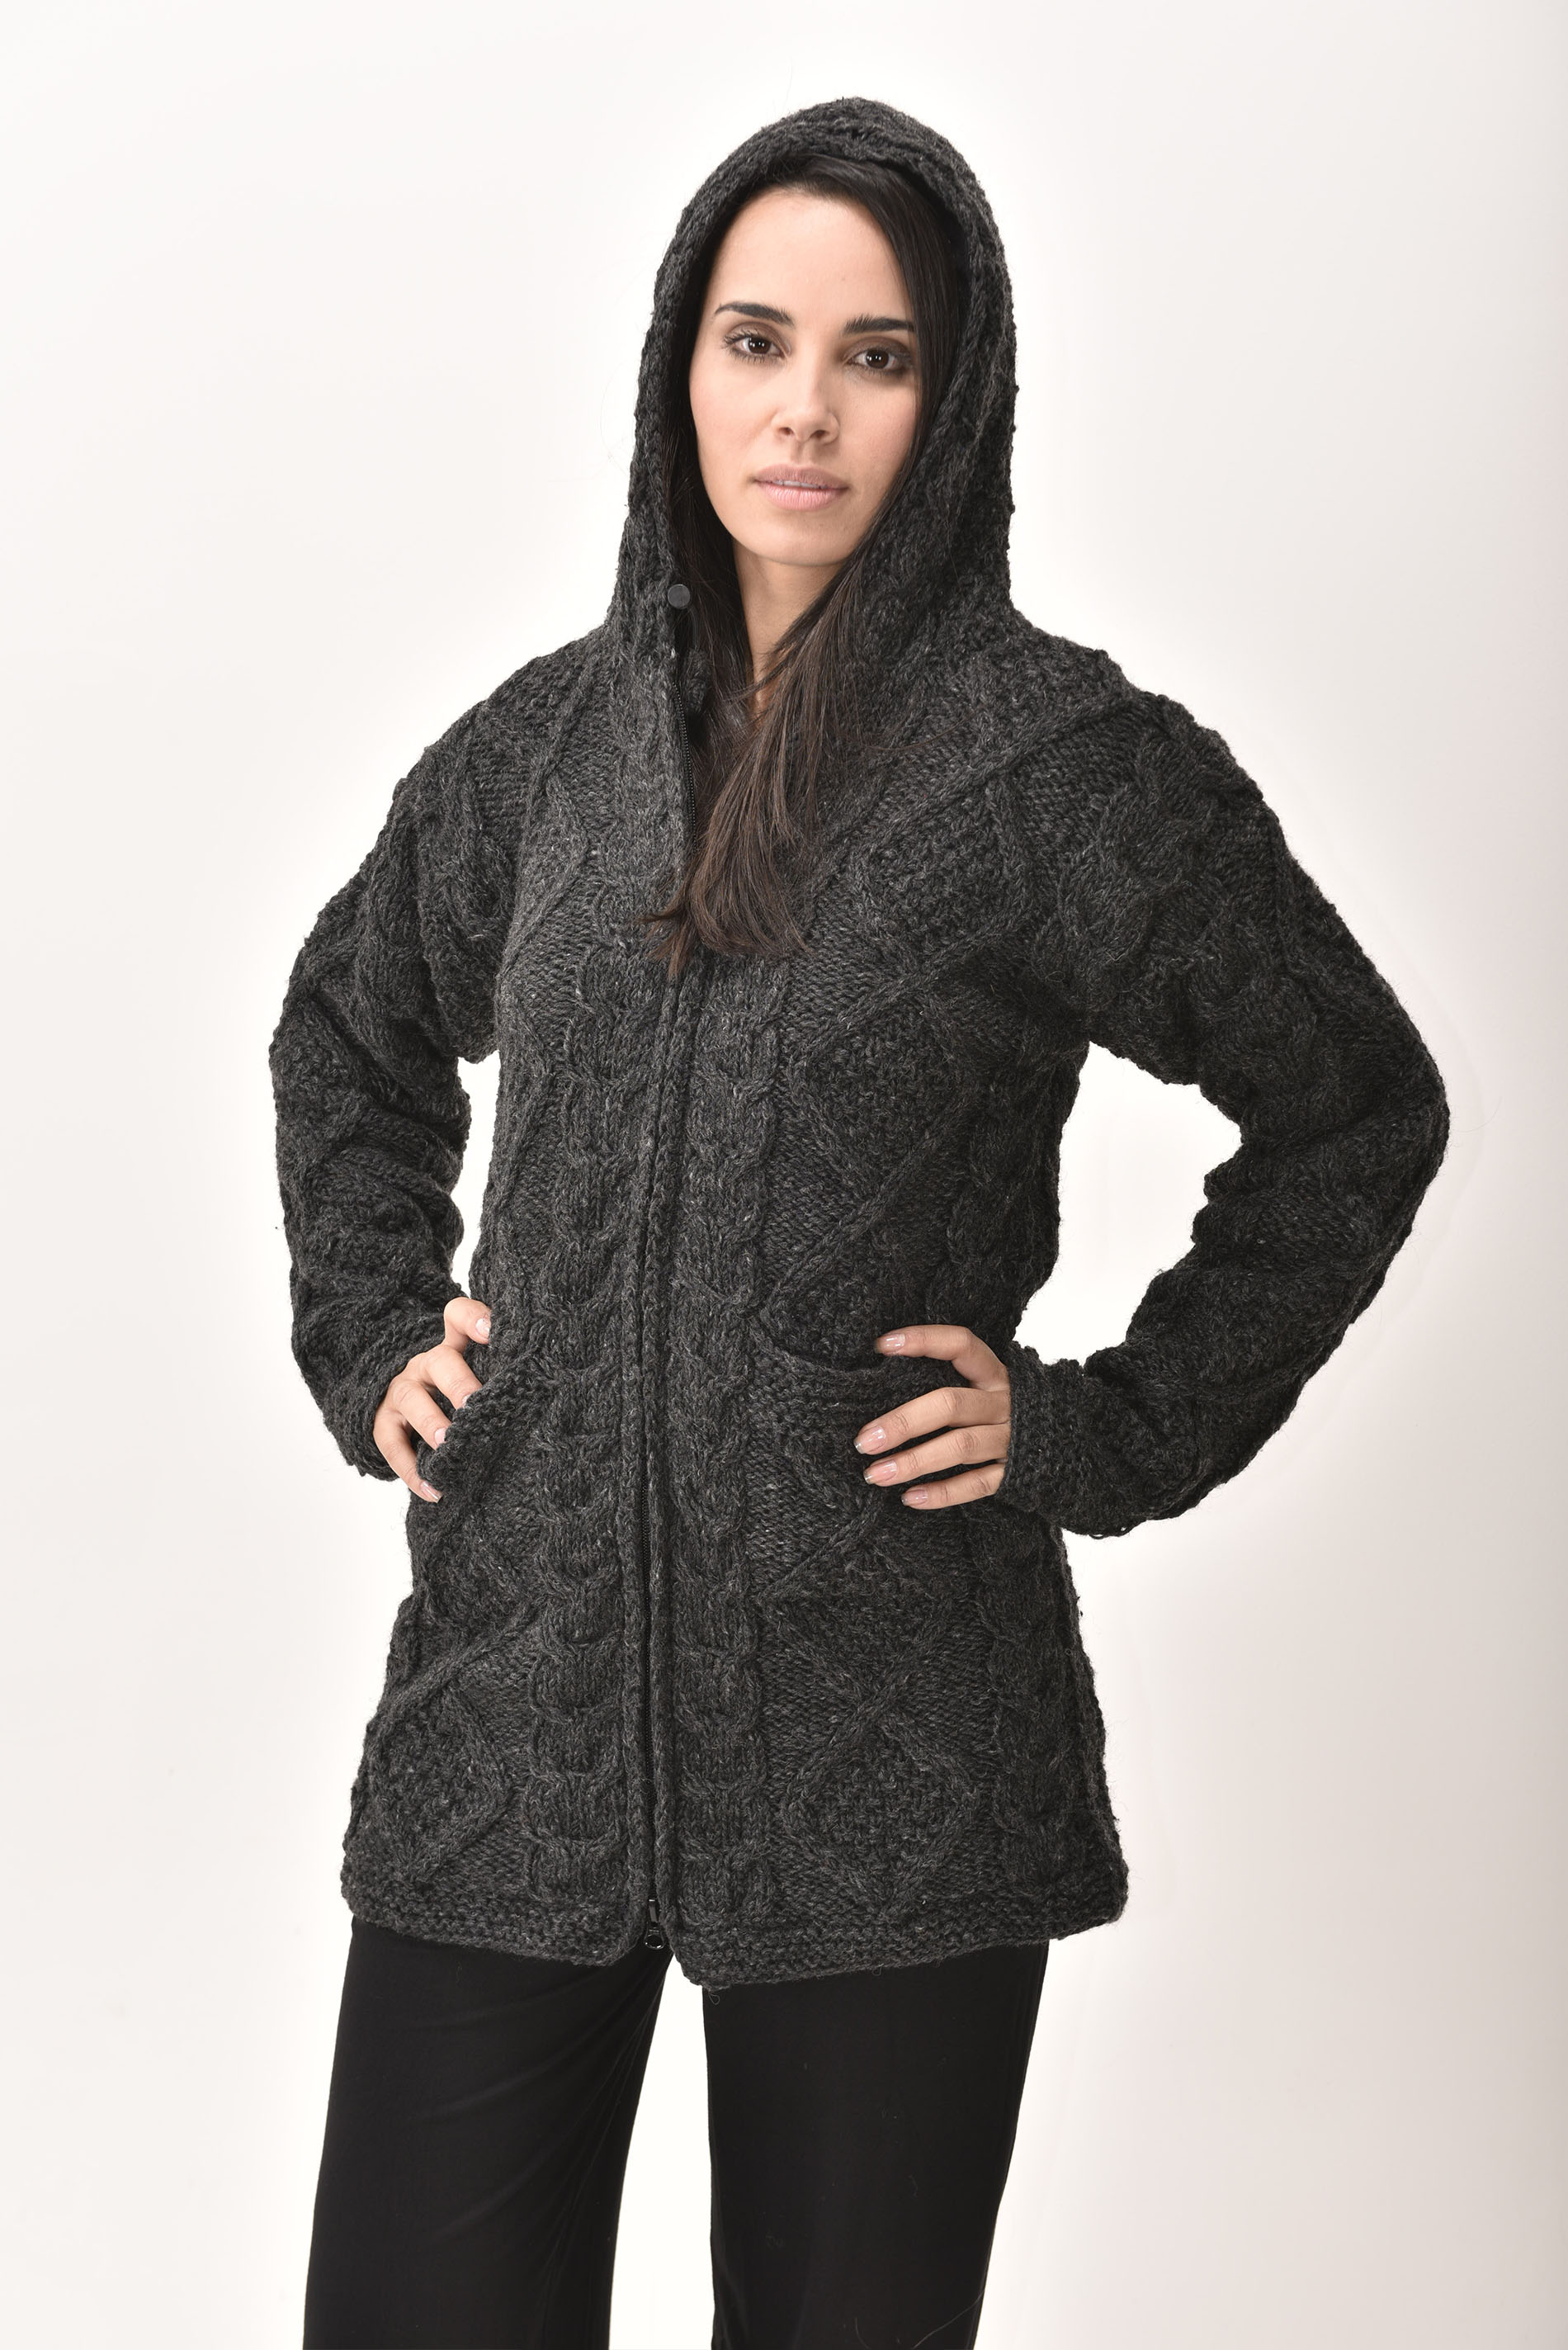 Himalayan Mountain Jacket Long Length Cable Knit, Grey